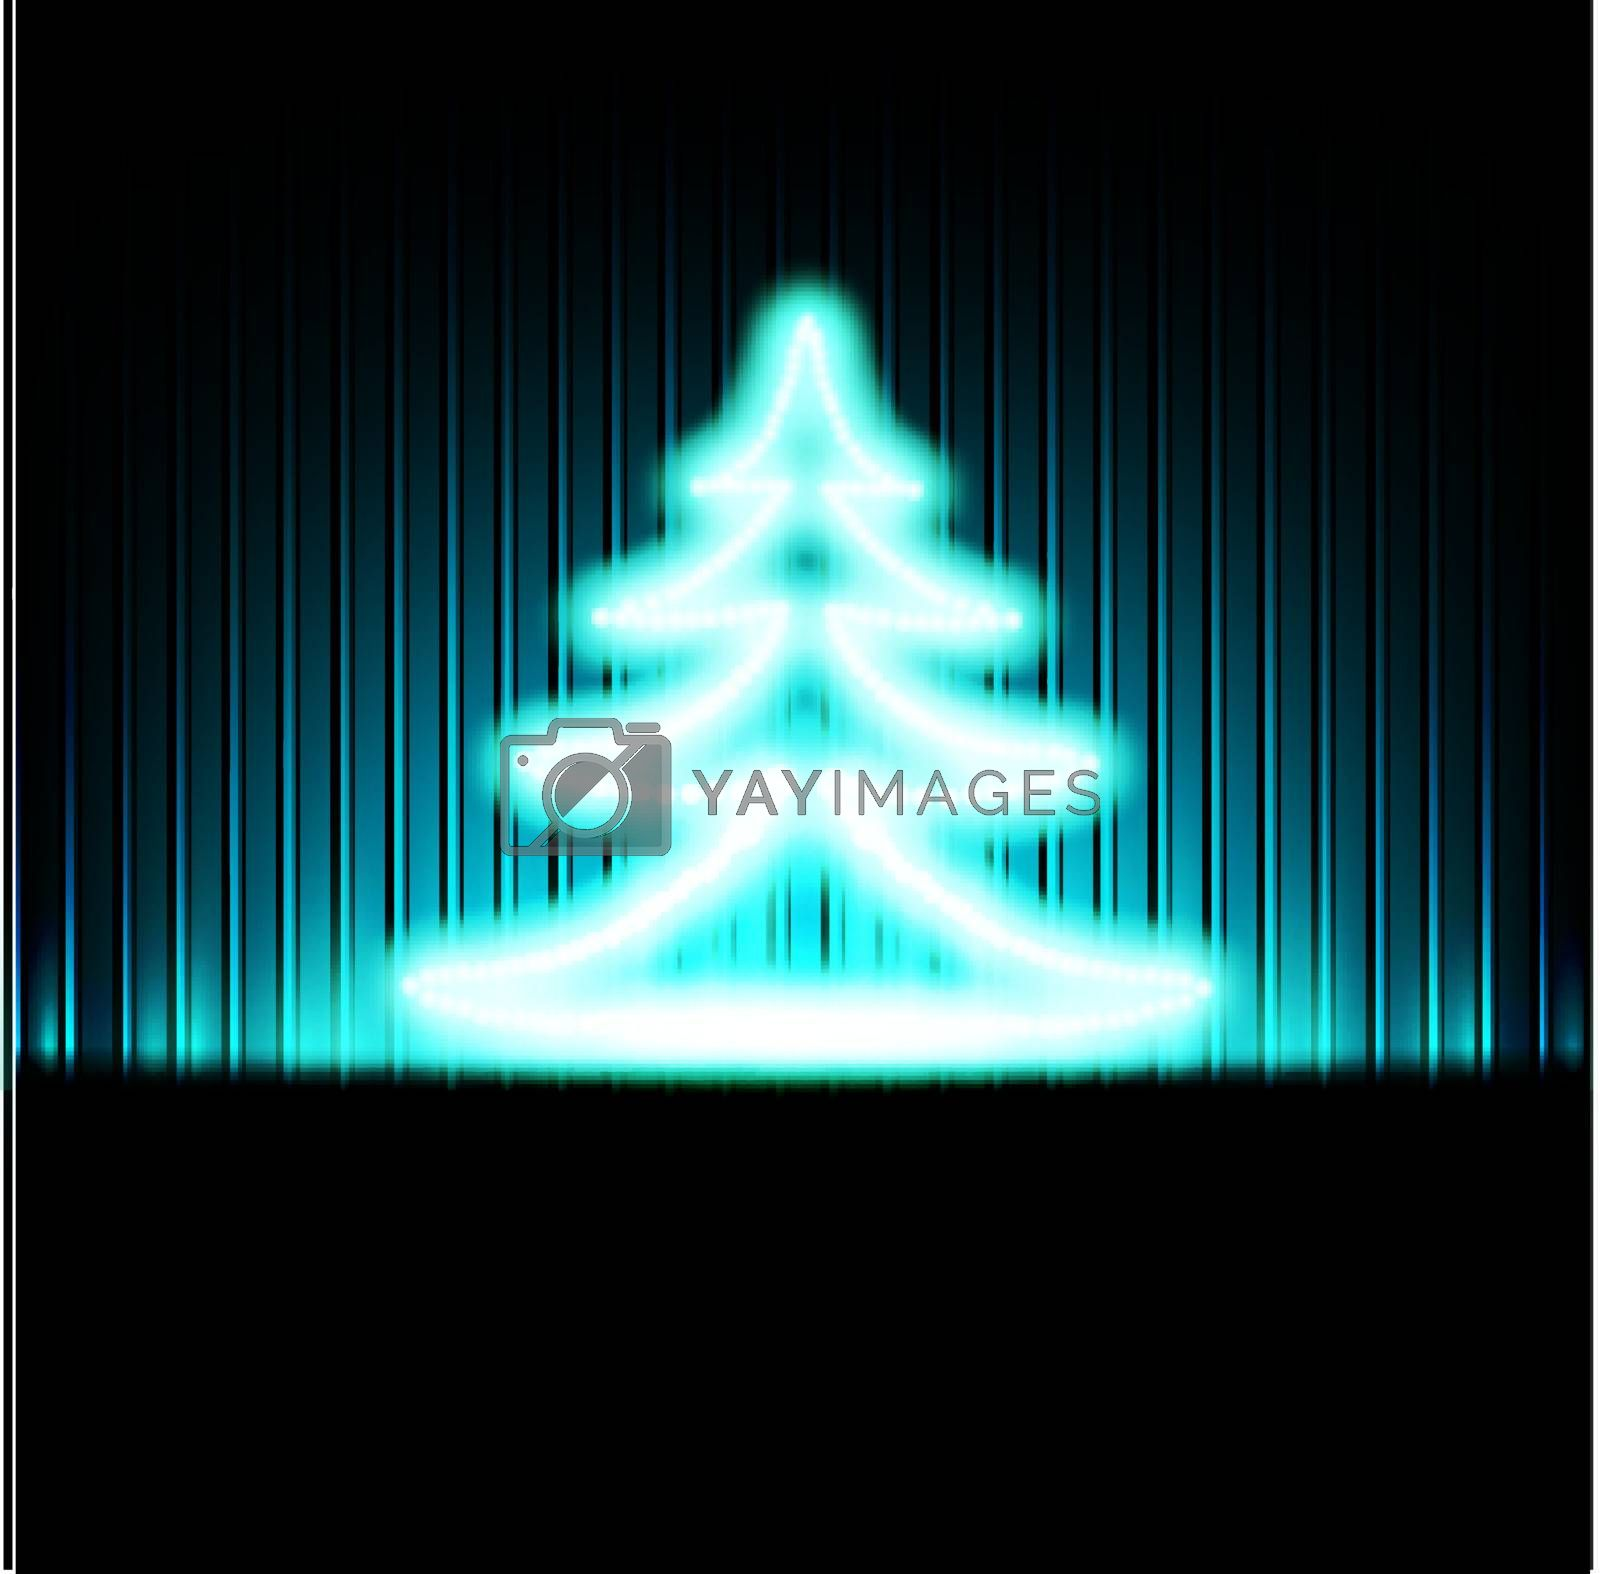 Winter holiday background with abstract Christmas tree